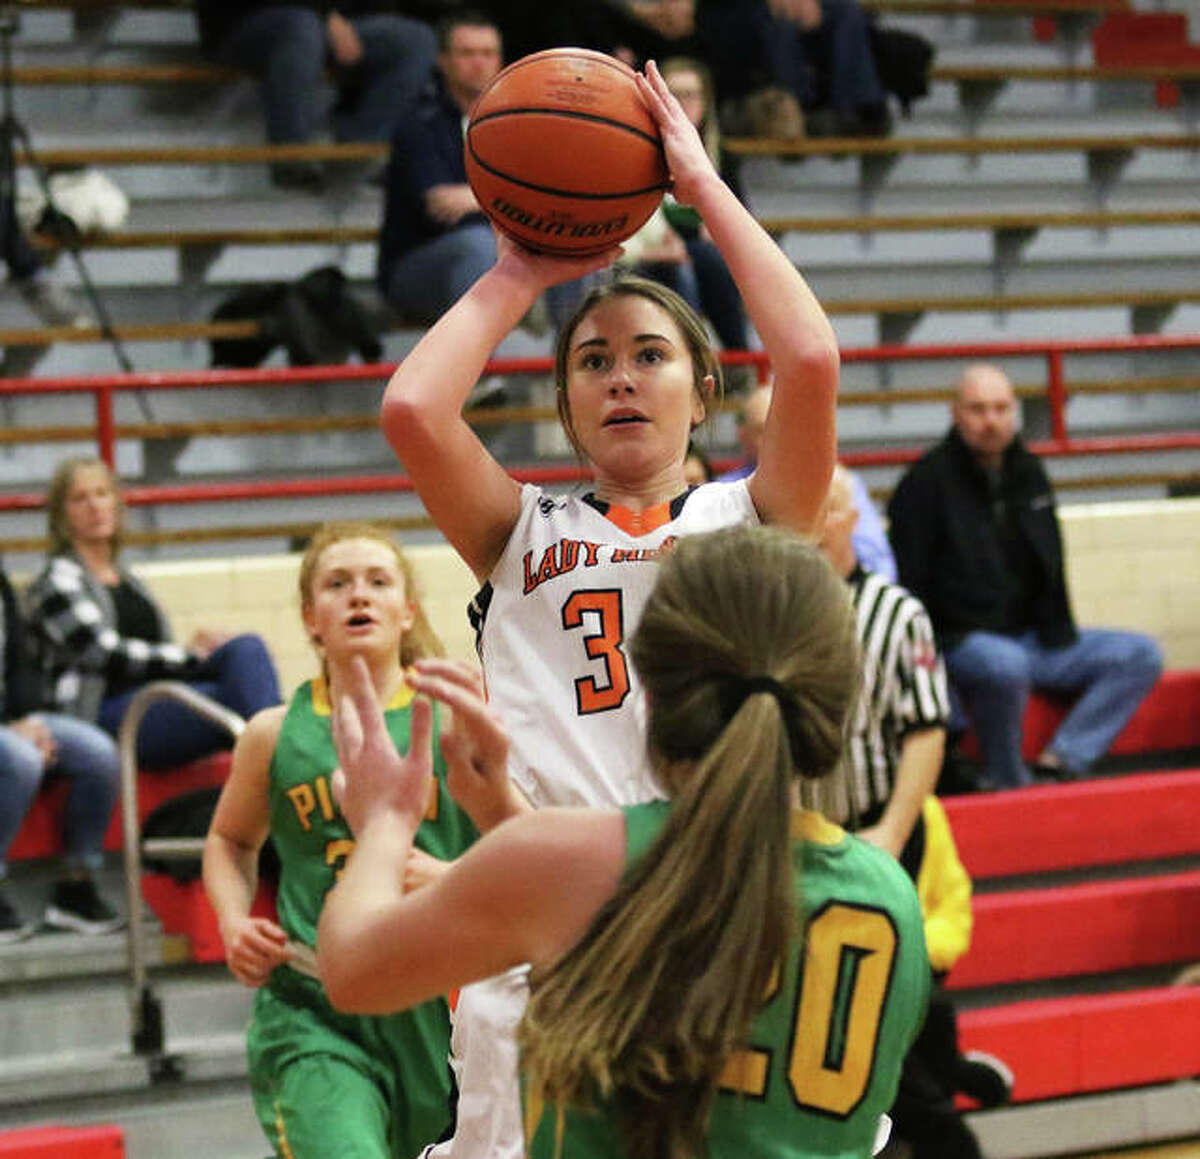 Gillespie's Keaton Link, shown taking a shot against Southwestern in a game last season, scored 13 points Monday night in the Miners' win over Auburn in Gillespie.